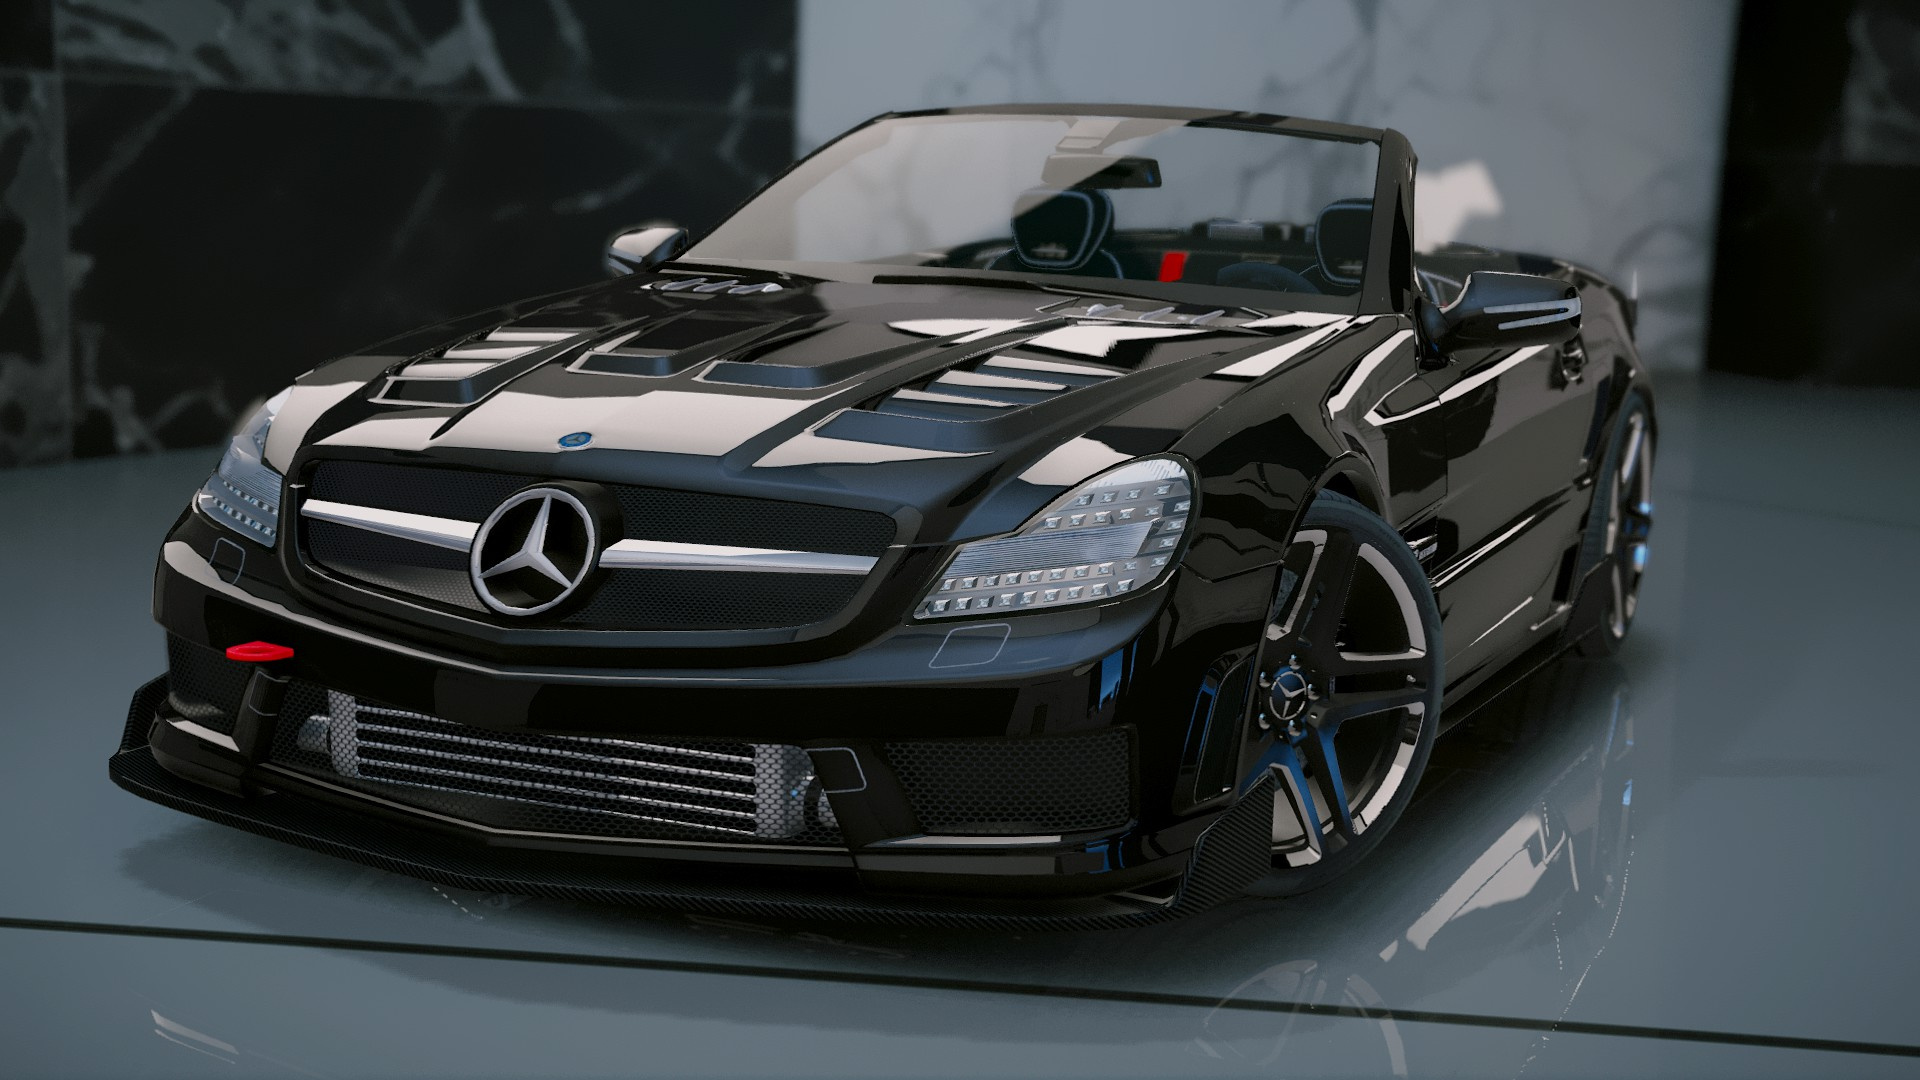 Mercedes benz sl 63 amg add on tuning gta5 for Mercedes benz sl550